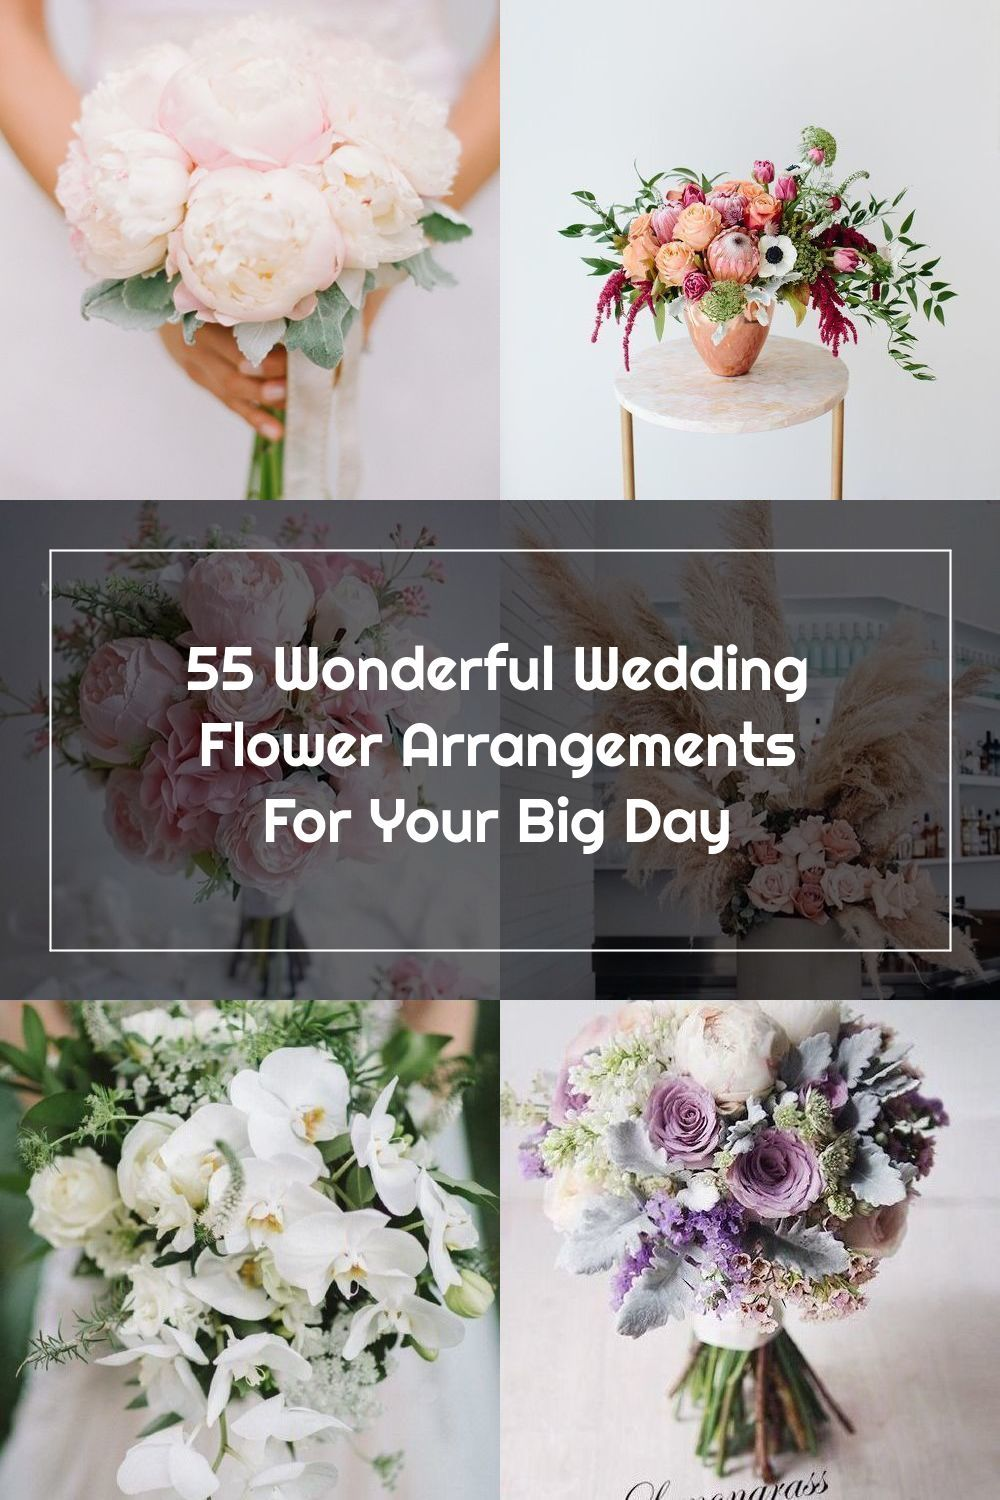 You Re Probably Familiar With Some Of The Most Common Wedding Flower Arrangements Such As Bouq In 2020 Wedding Flowers Wedding Flower Arrangements Flower Arrangements